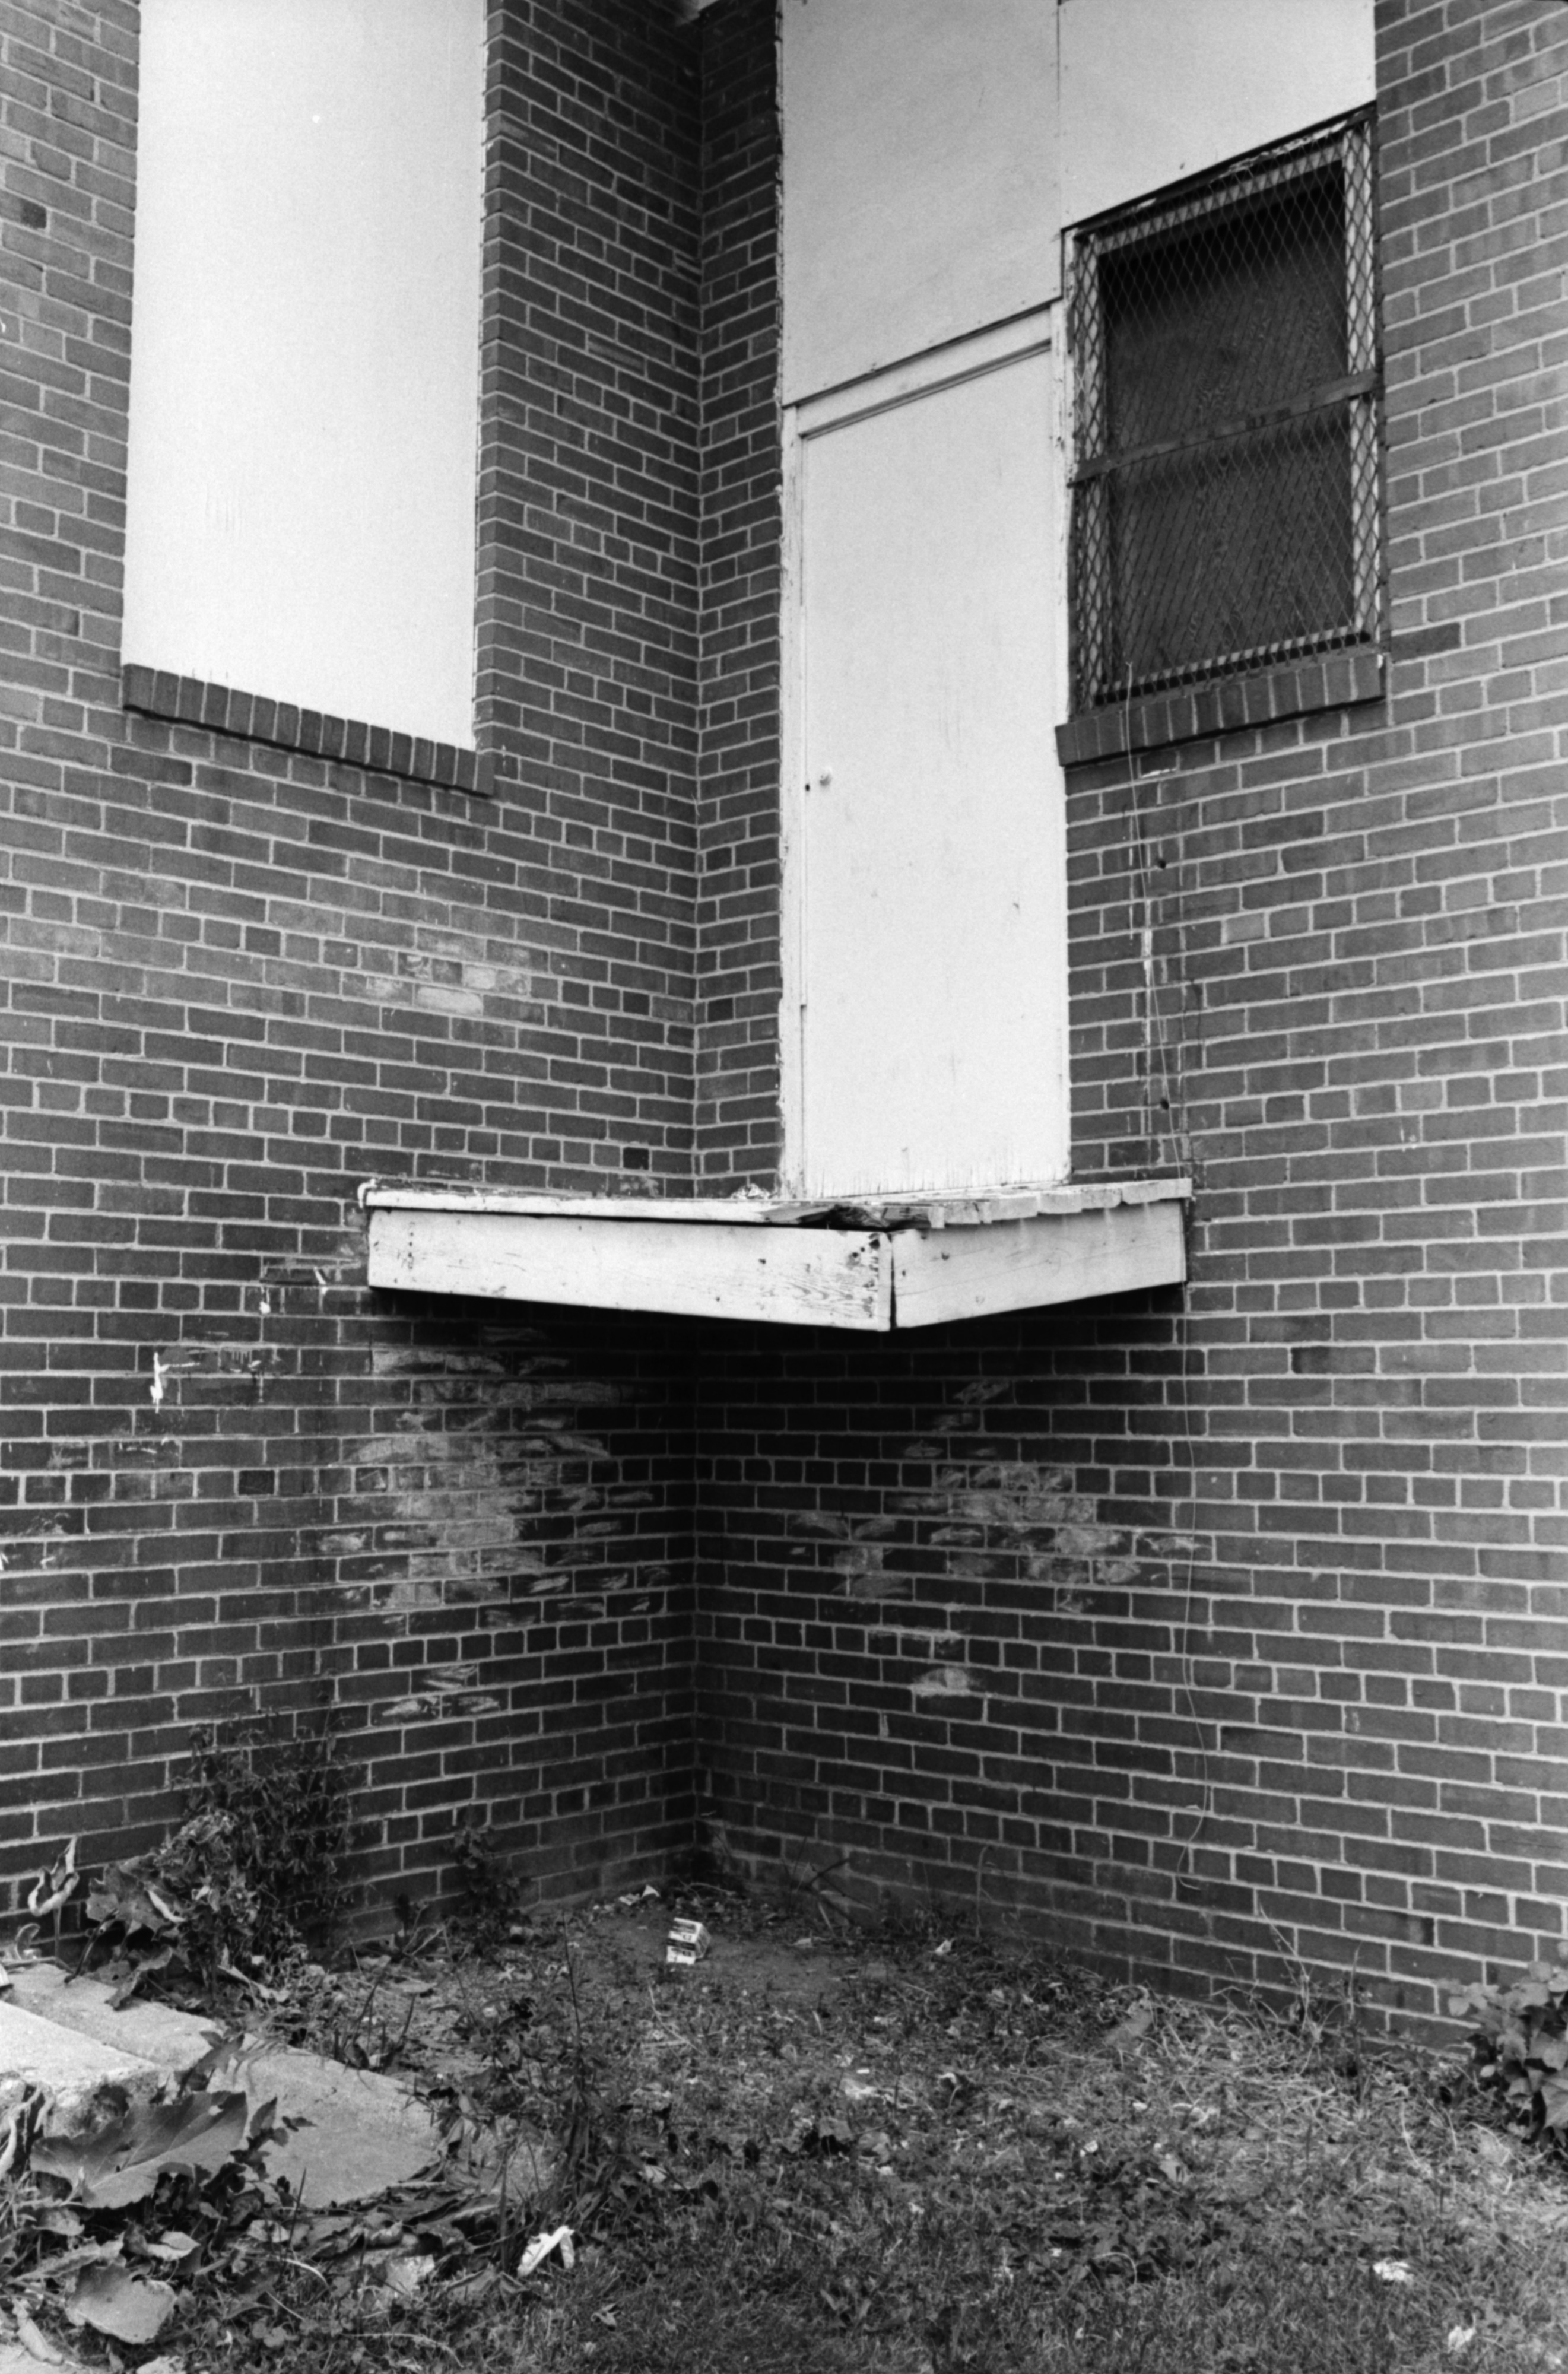 Fall Out Door Poses Safety Hazard at Parkridge Community Center, July 1978 image